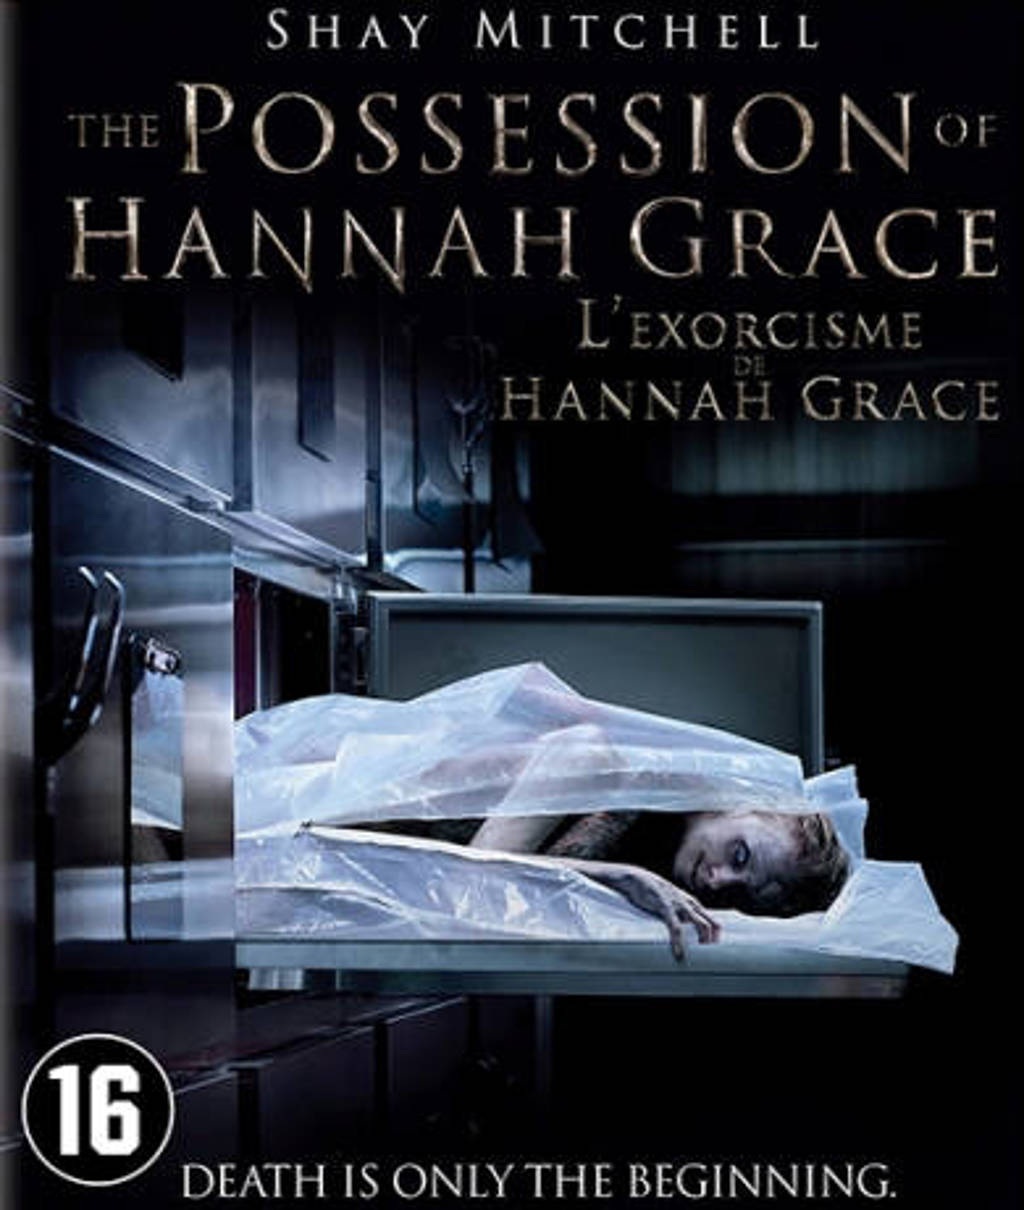 The possession of Hannah Grace (Blu-ray)